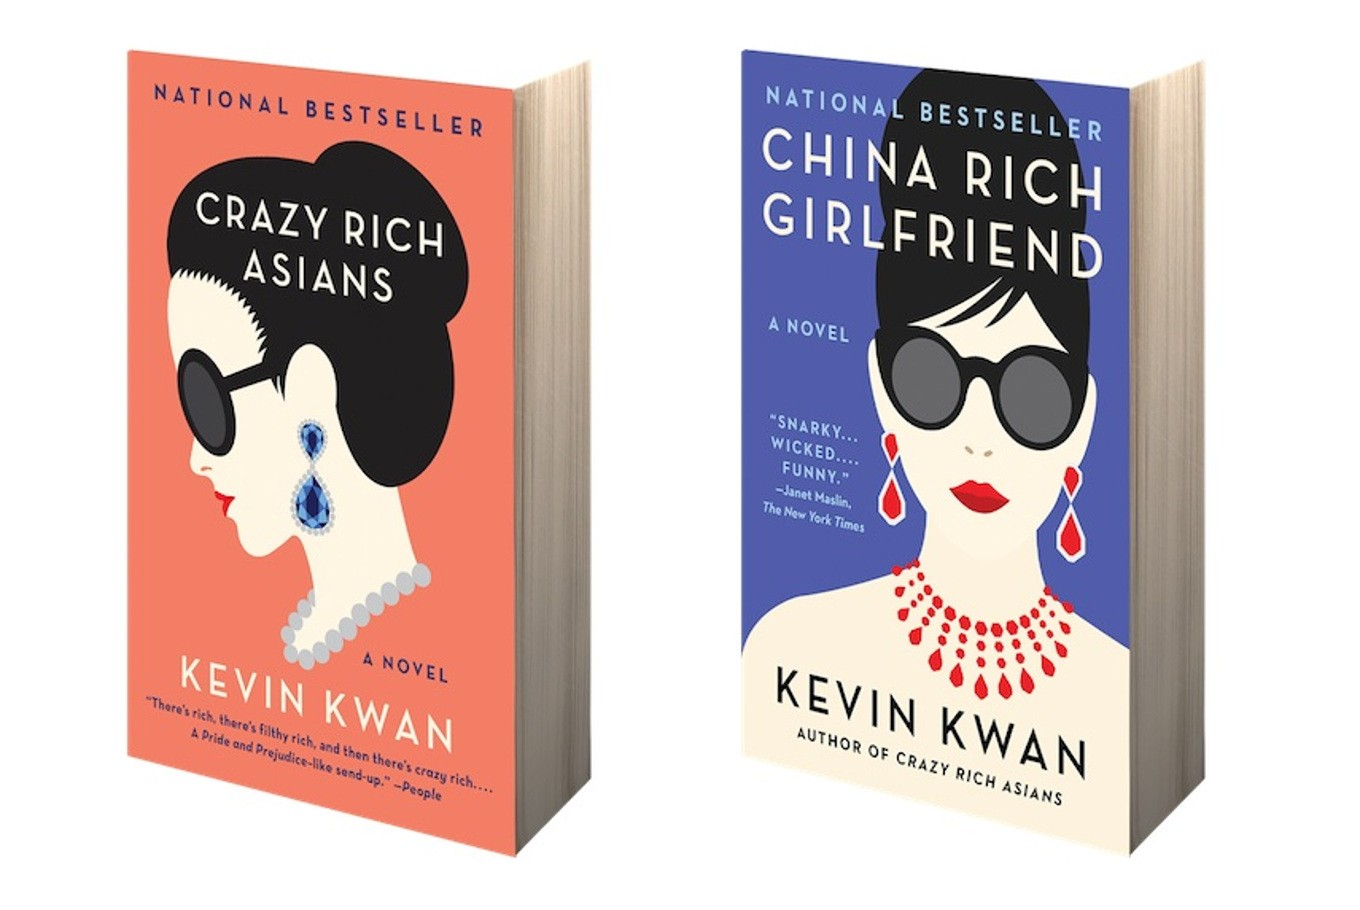 8 crazy facts about 'Crazy Rich Asians'